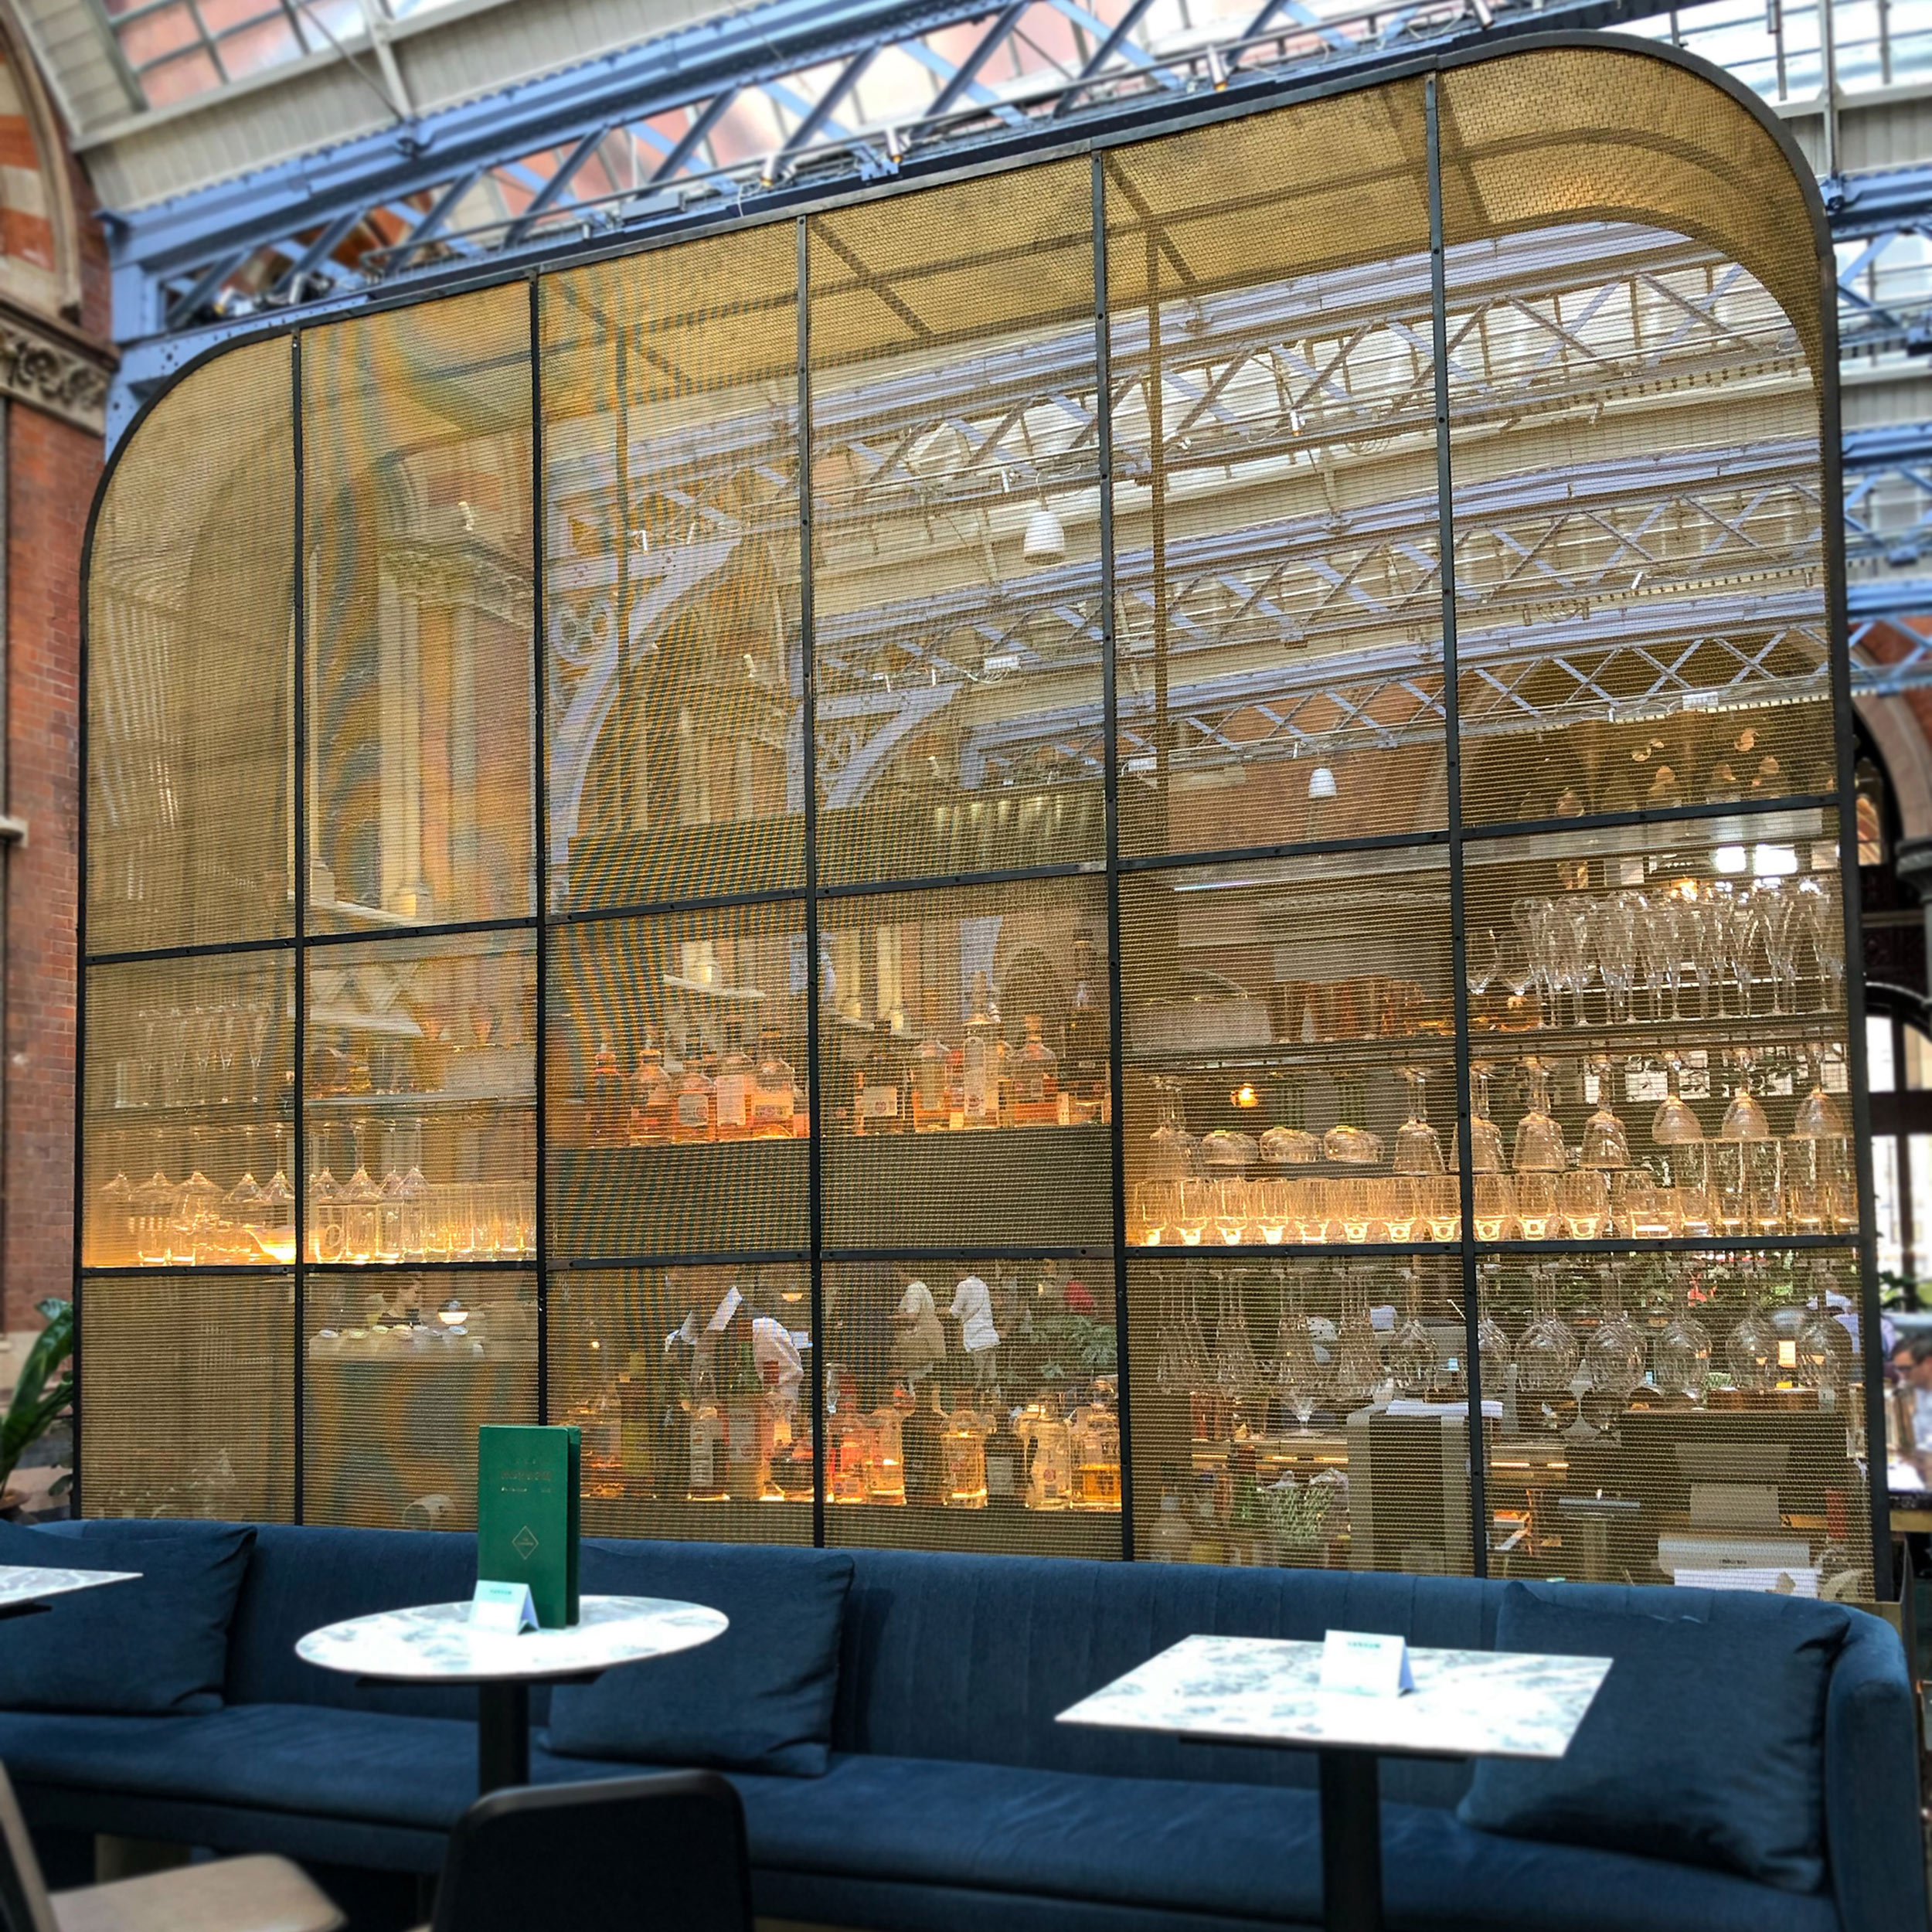 Banker Wire's LPZ-71 architectural wire mesh is used in brass as part of The Hansom's bar.